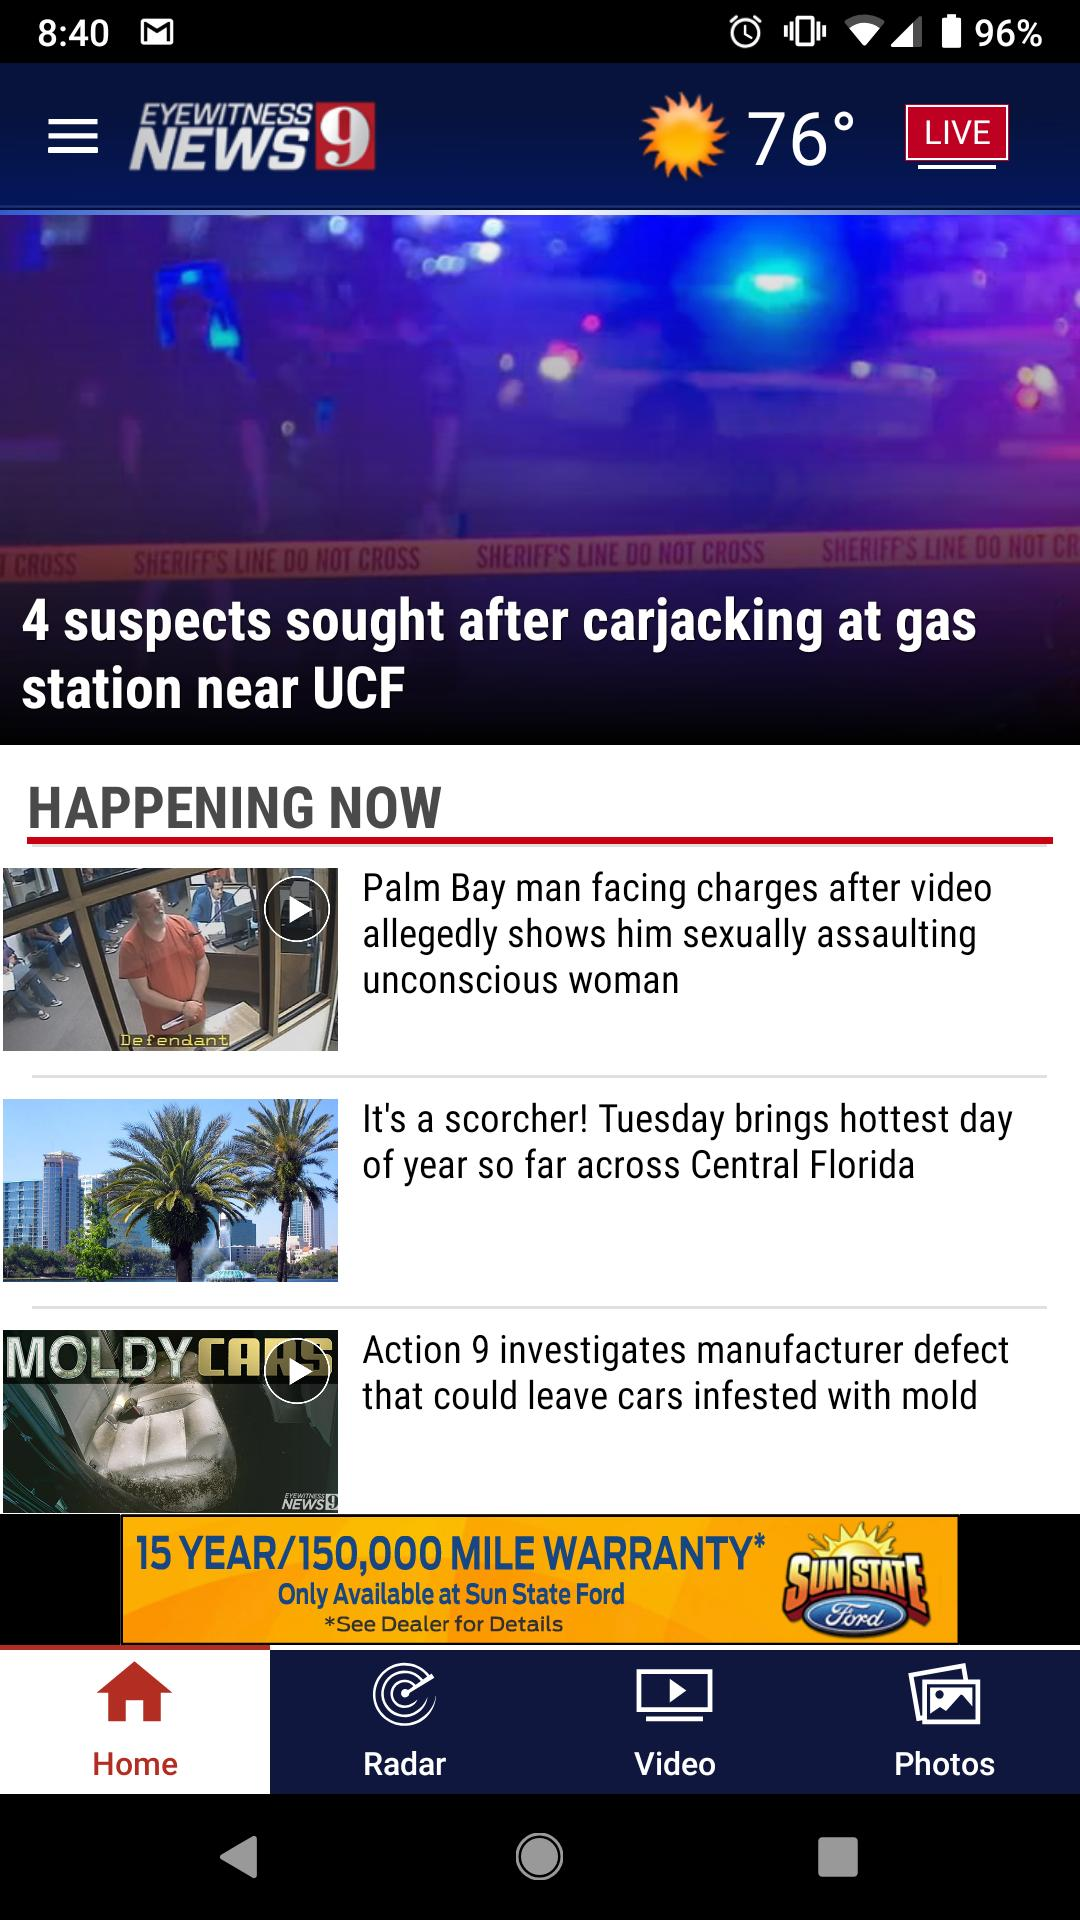 WFTV Channel 9 Eyewitness News for Android - APK Download